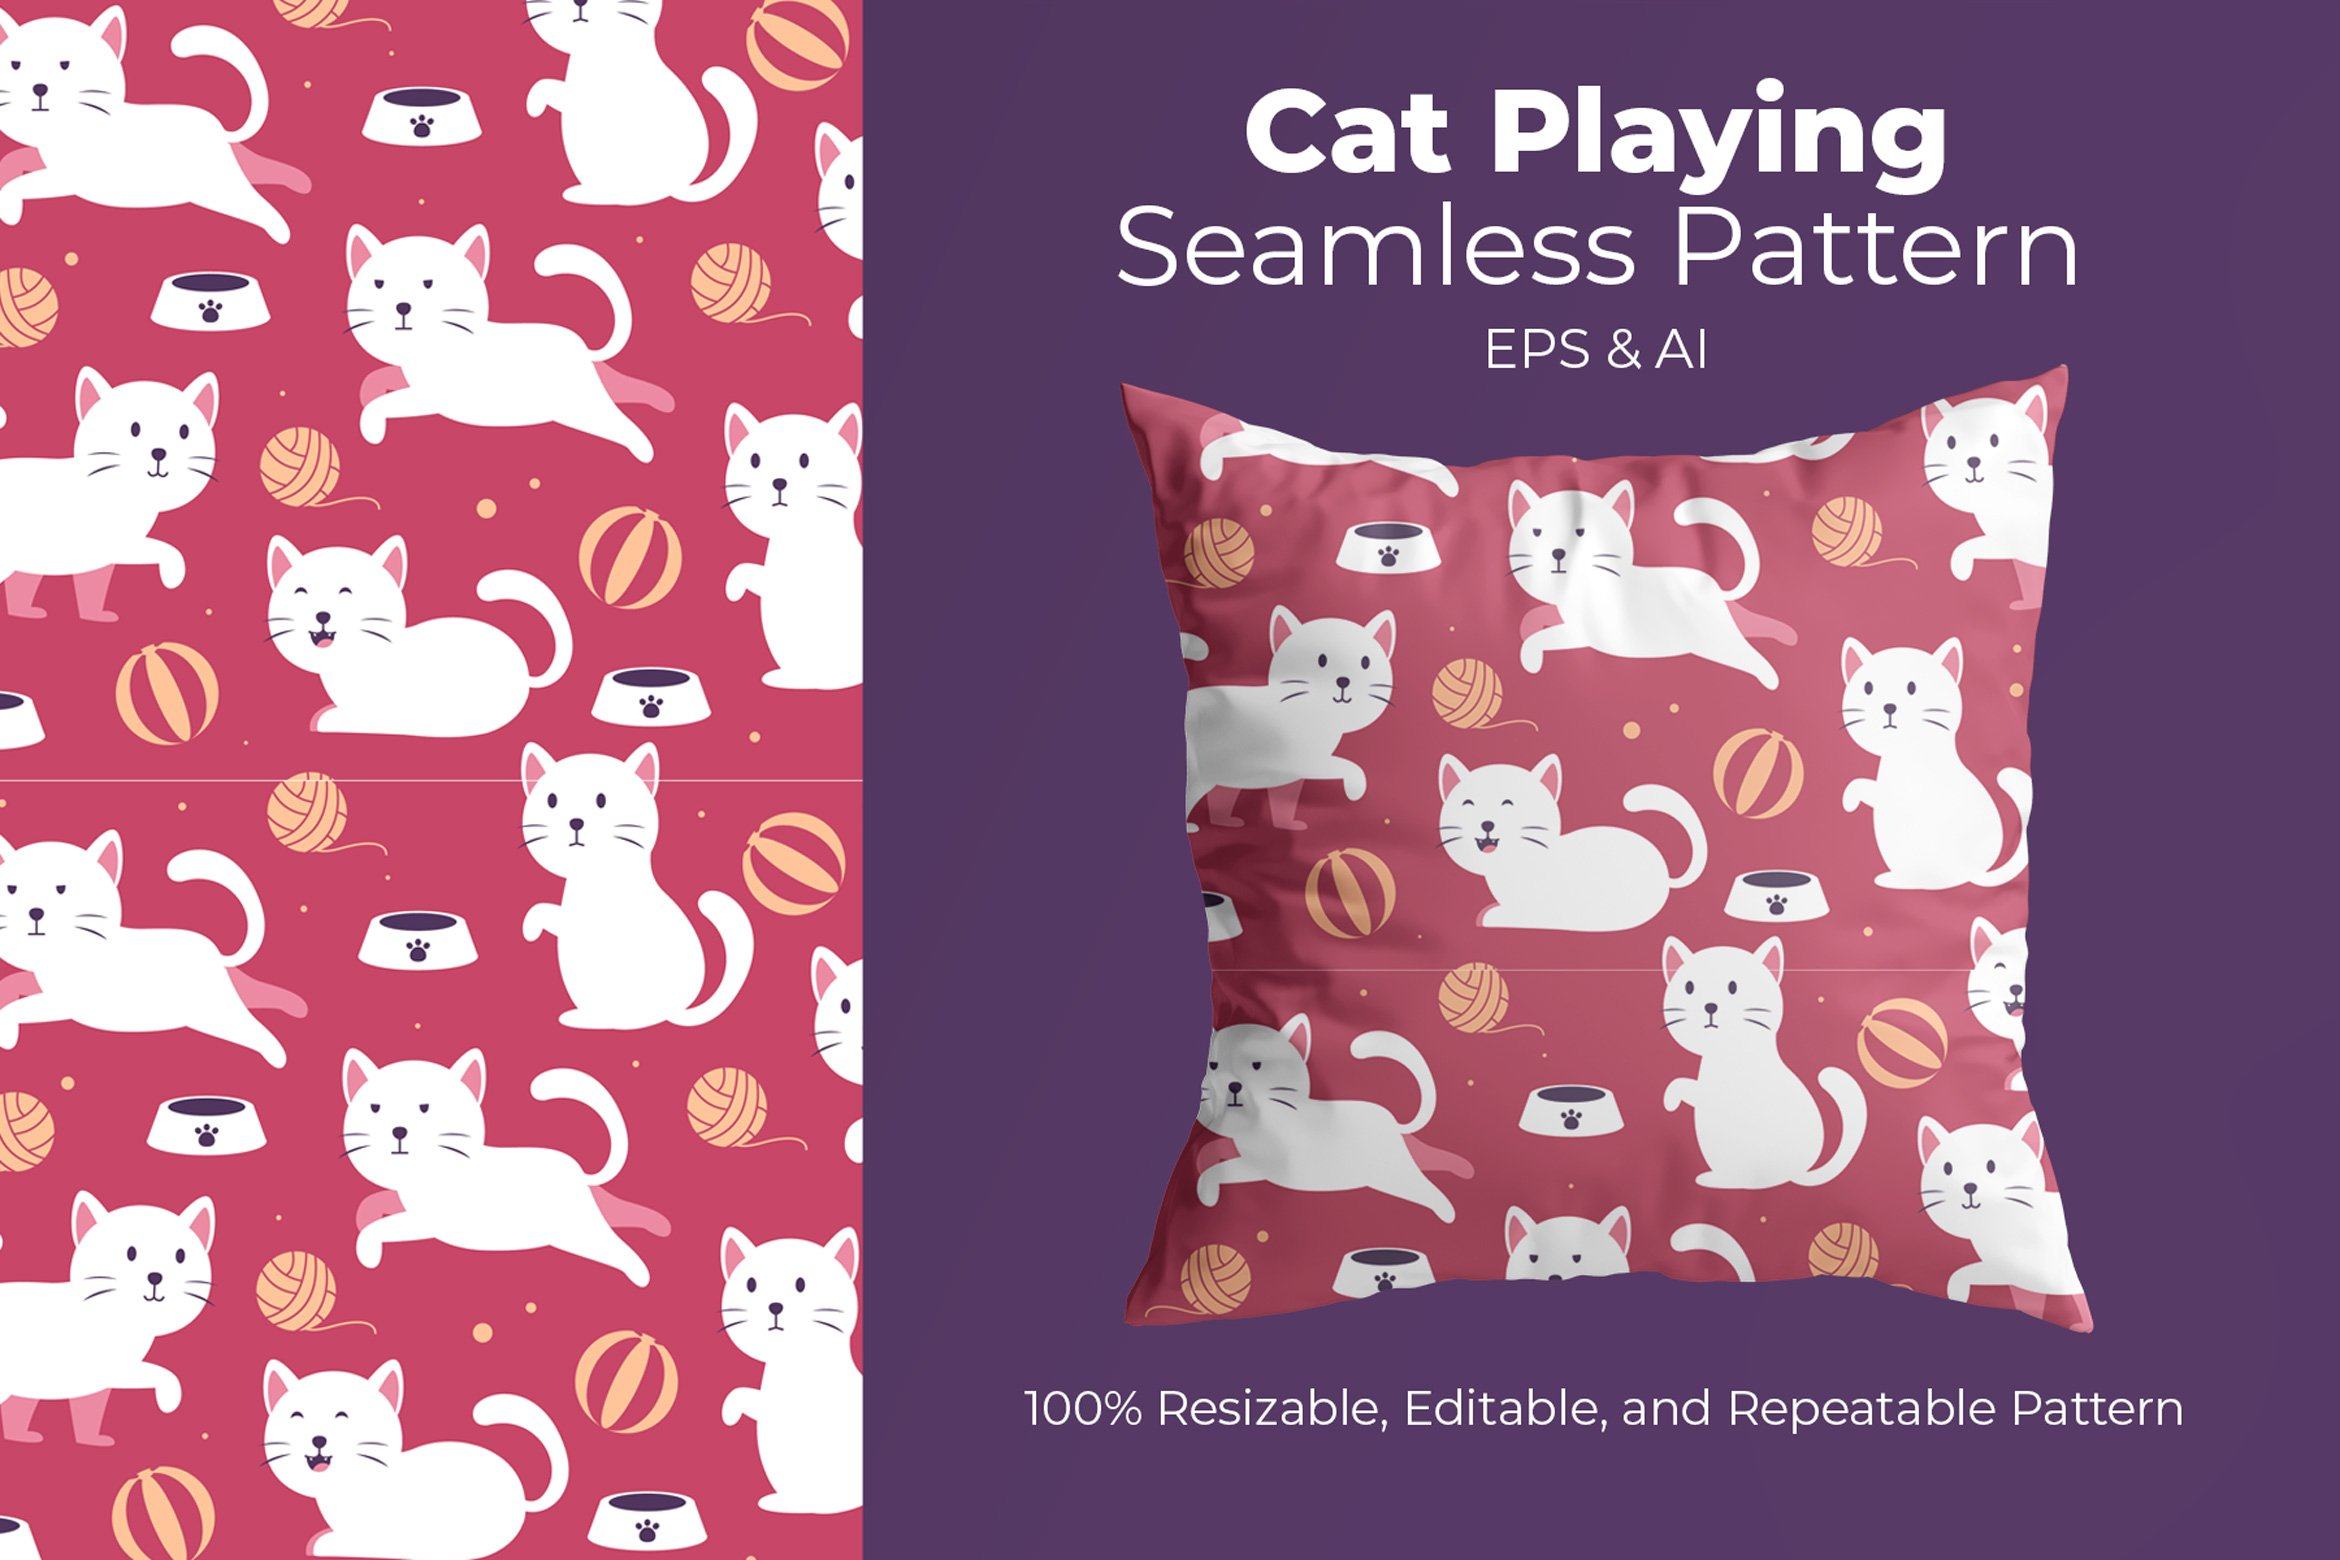 Cat Playing - Seamless Pattern example image 1